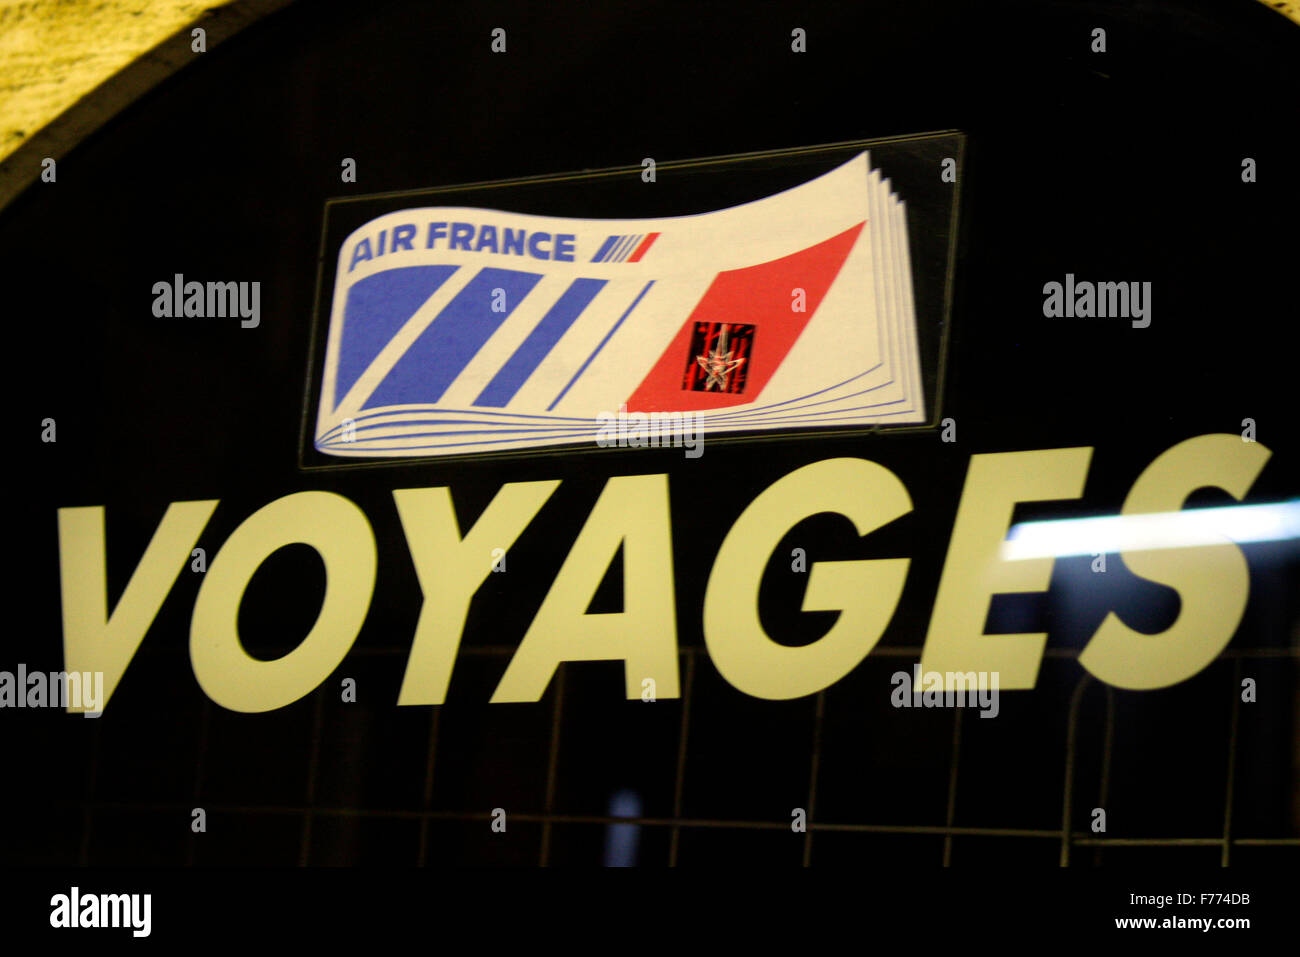 Markennamen: 'Air France Voyages', Chamonix, Frankrfeich. - Stock Image